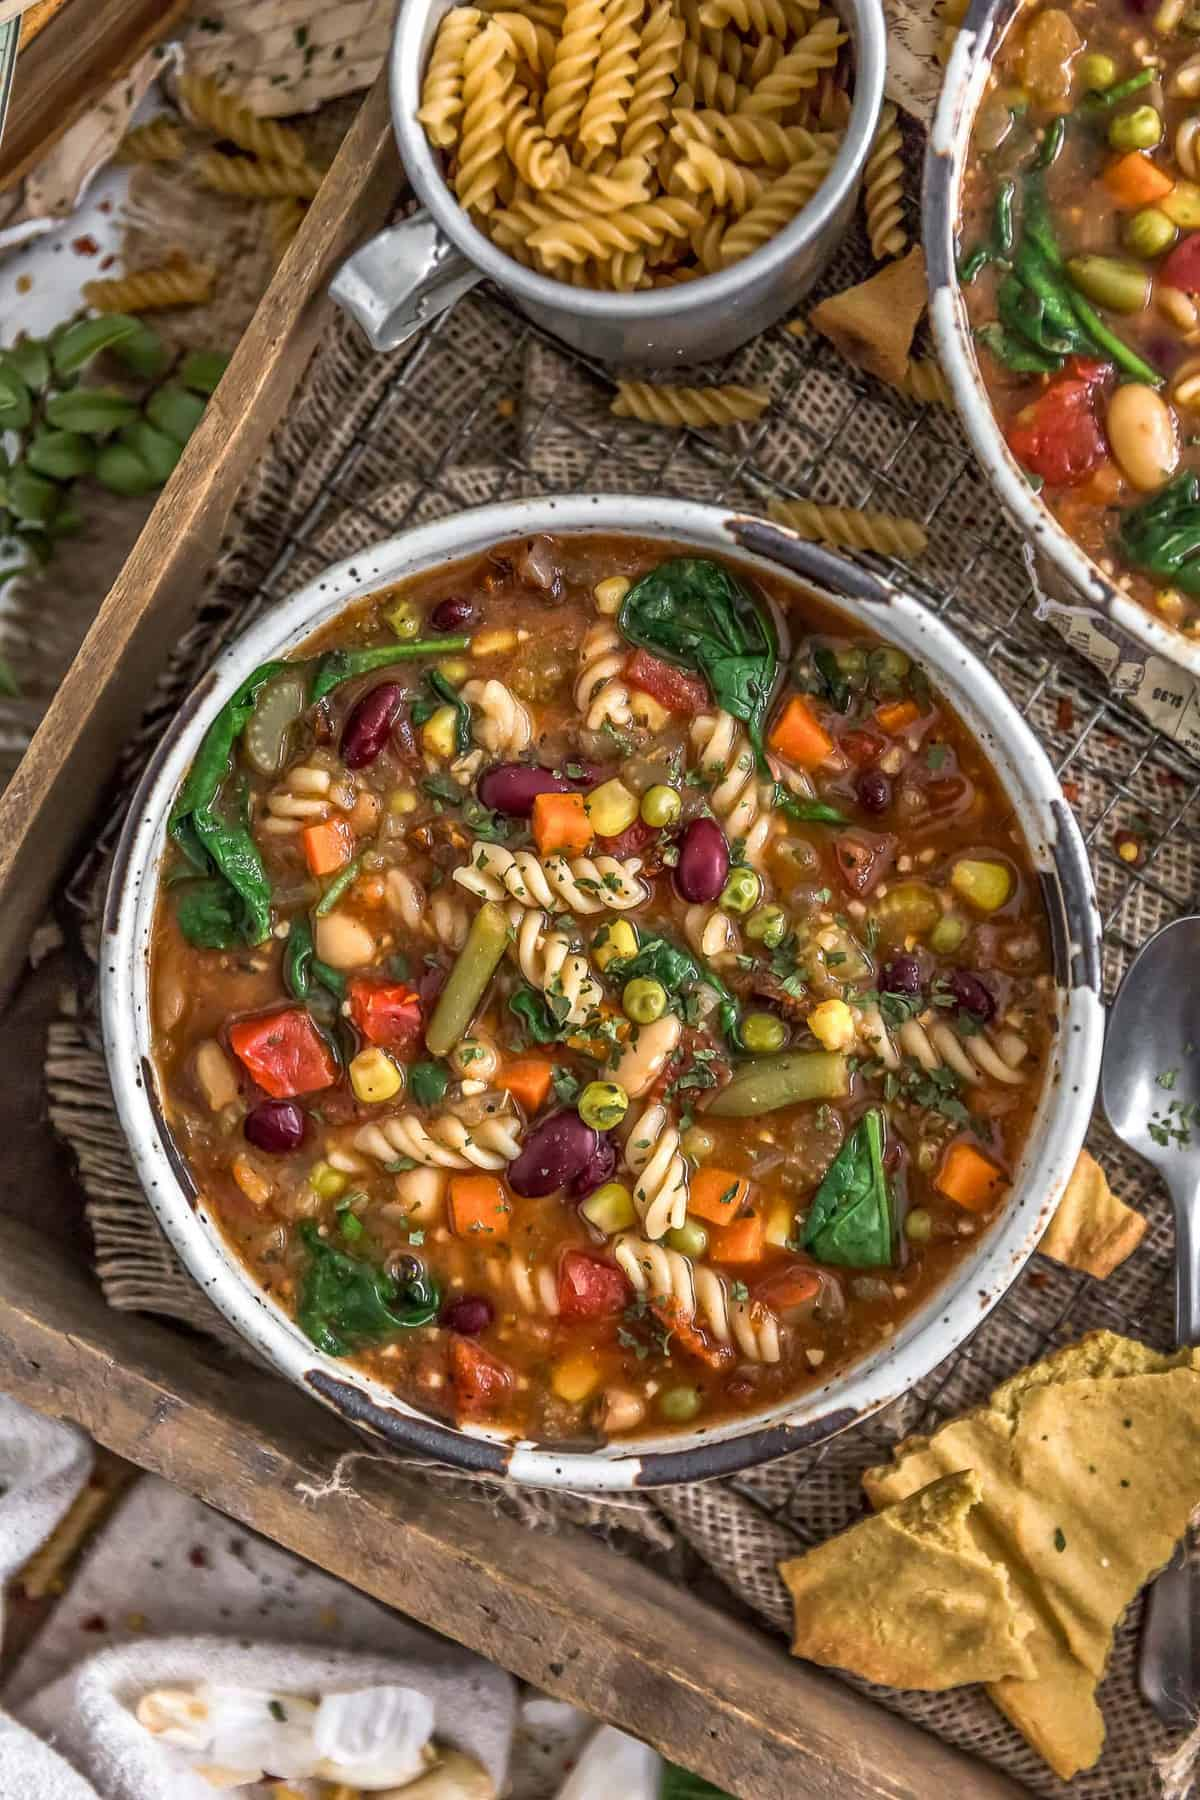 Bowl of Healthy Minestrone Soup